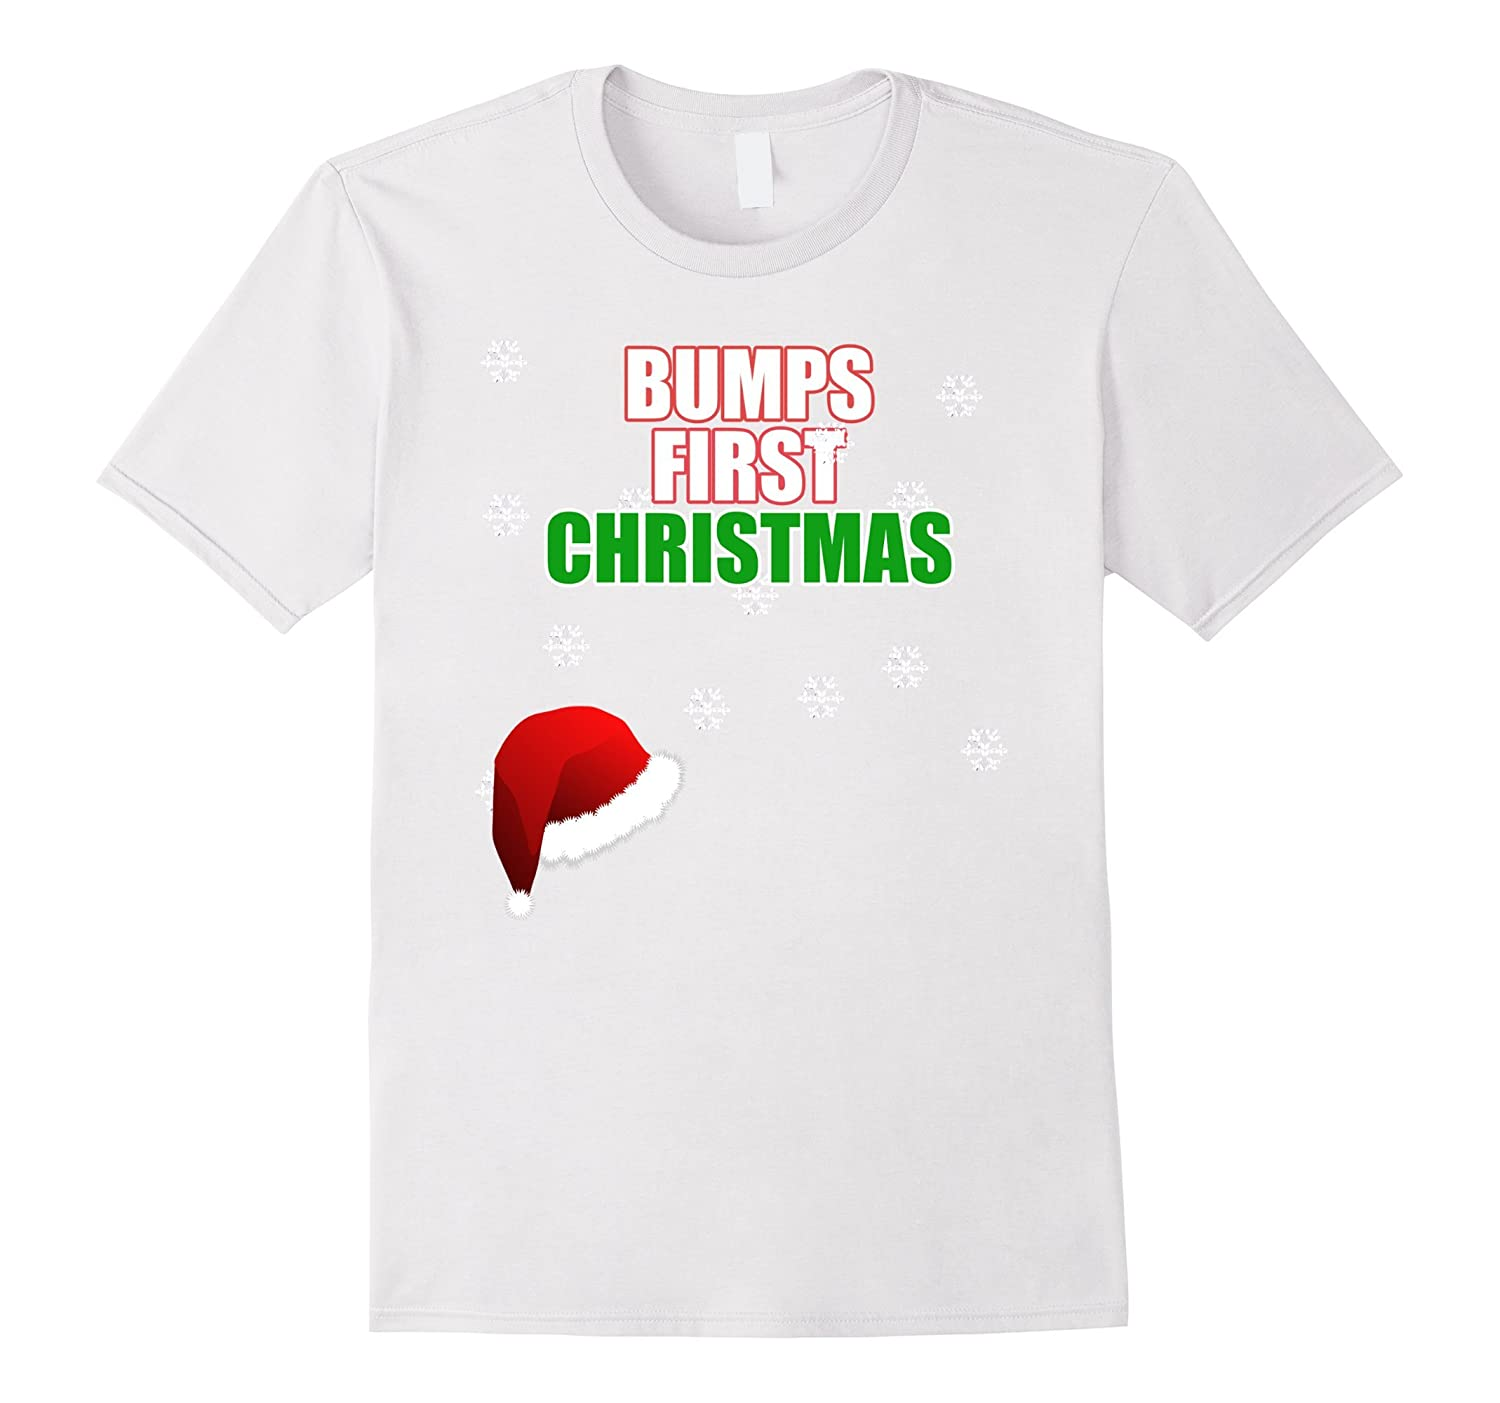 Maternity Christmas Shirt.Cute Bumps First Christmas Shirt Funny Xmas Maternity Shirt Bn